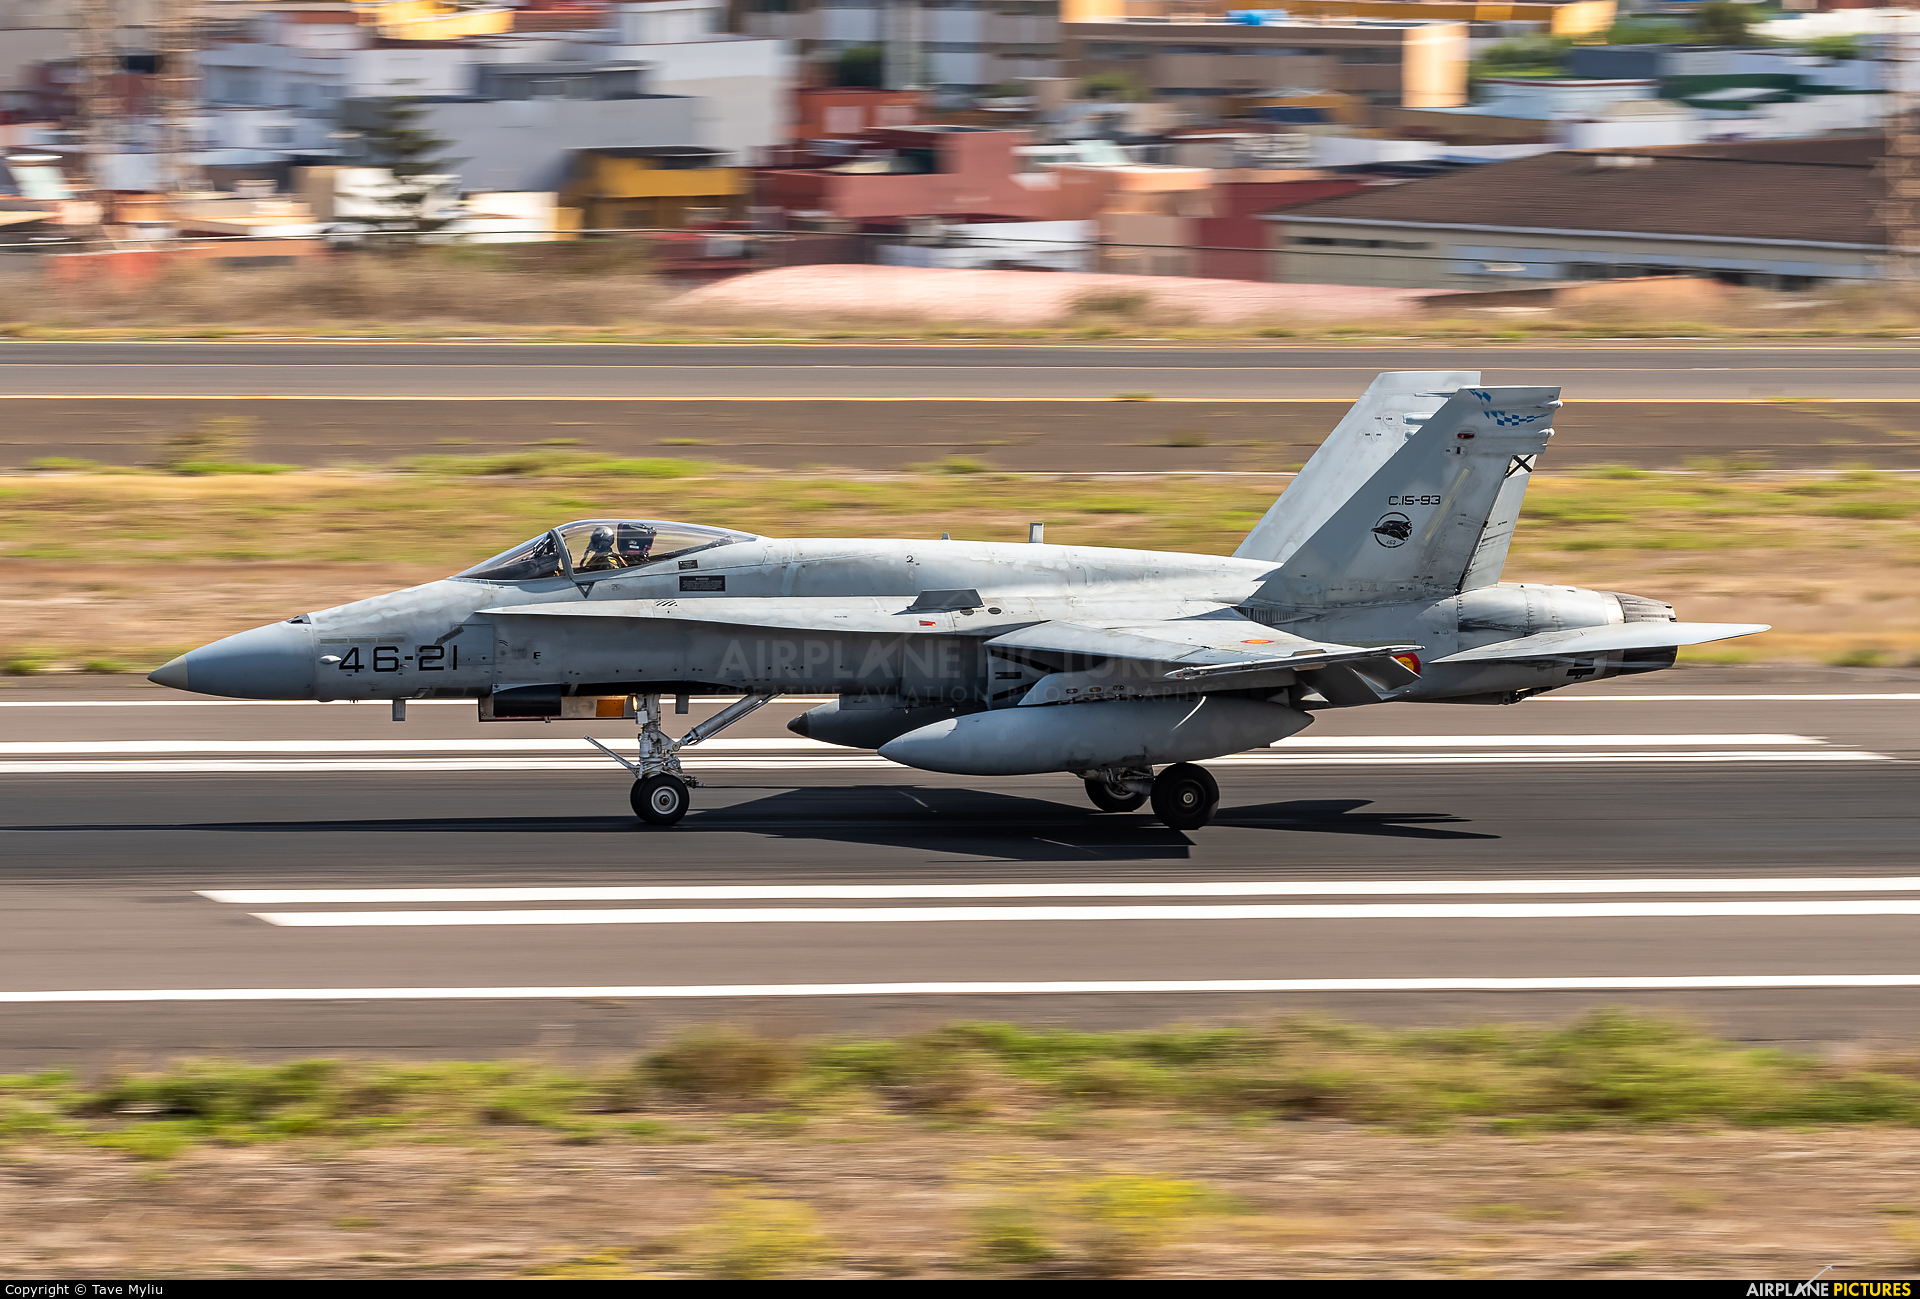 Spain - Air Force C.15-93 aircraft at Tenerife Norte - Los Rodeos